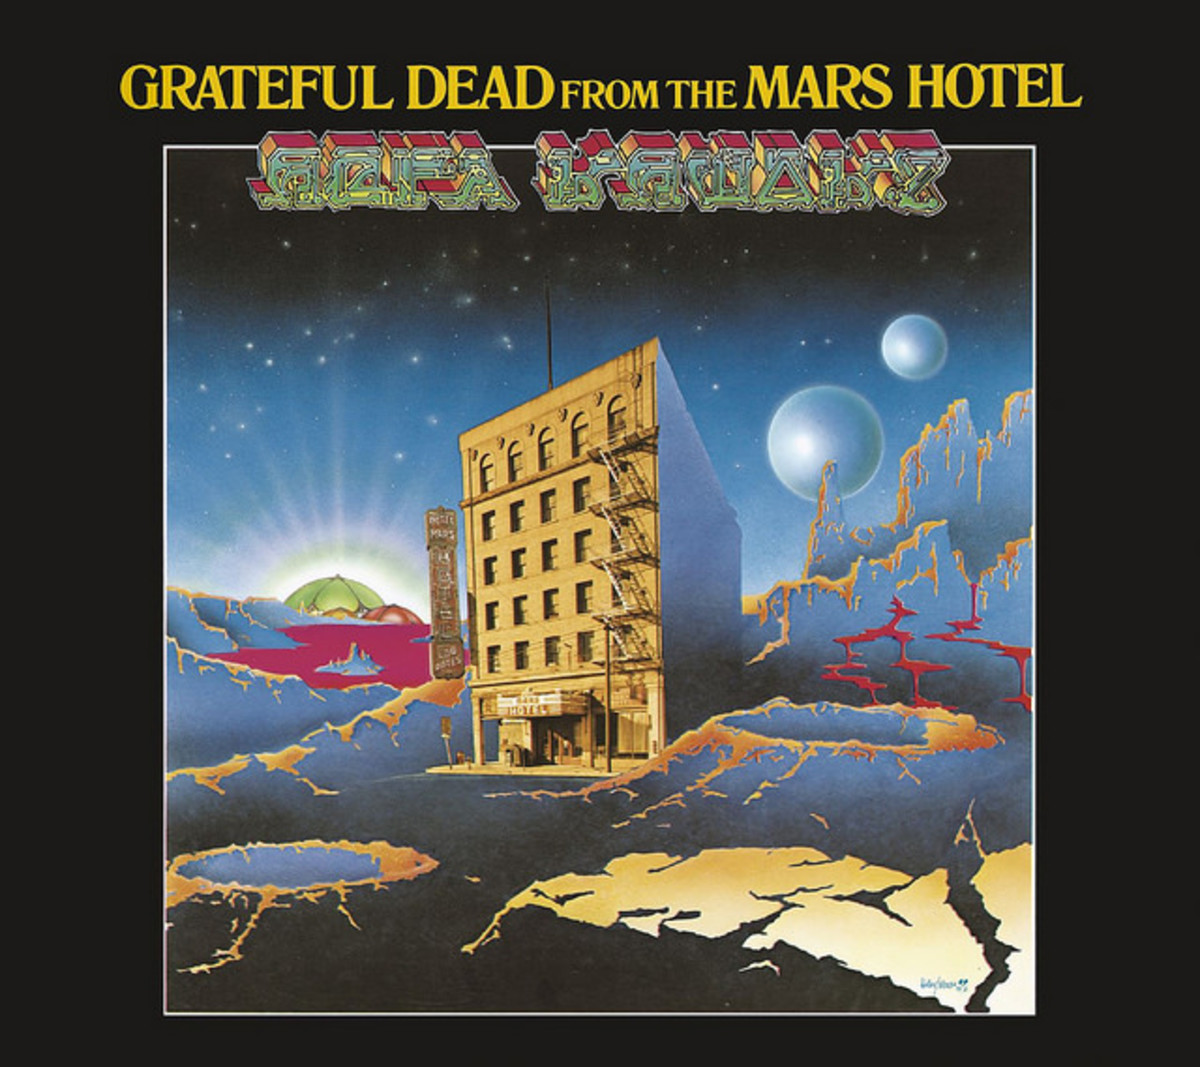 "Grateful Dead ""From the Mars Hotel"" Grateful Dead Records GD 102 12"" LP Vinyl Record (1974) Album Cover Art by Alton Kelley & Stanley Mouse"